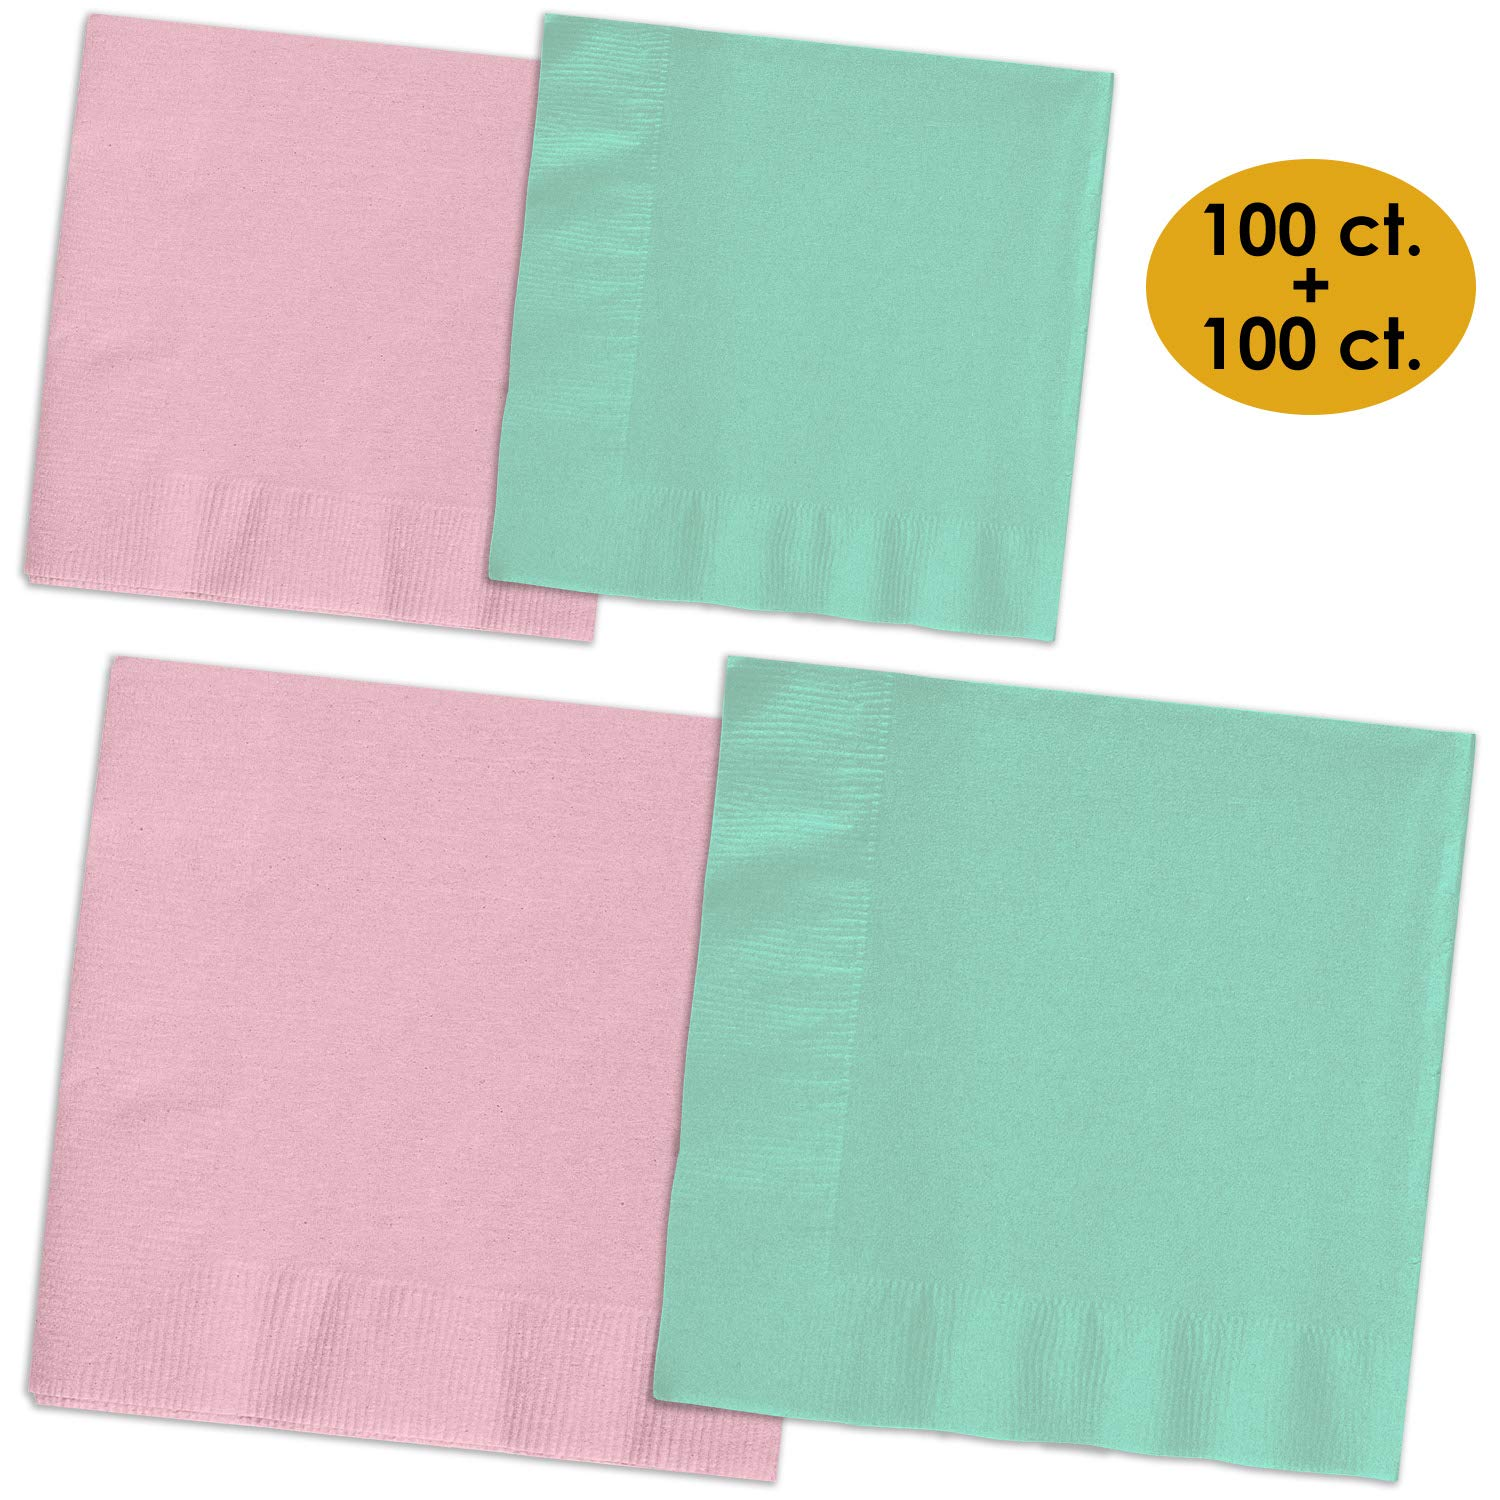 200 Napkins - Candy Pink & Mint - 100 Beverage Napkins + 100 Luncheon Napkins, 2-Ply, 50 Per Color Per Type by HeroFiber